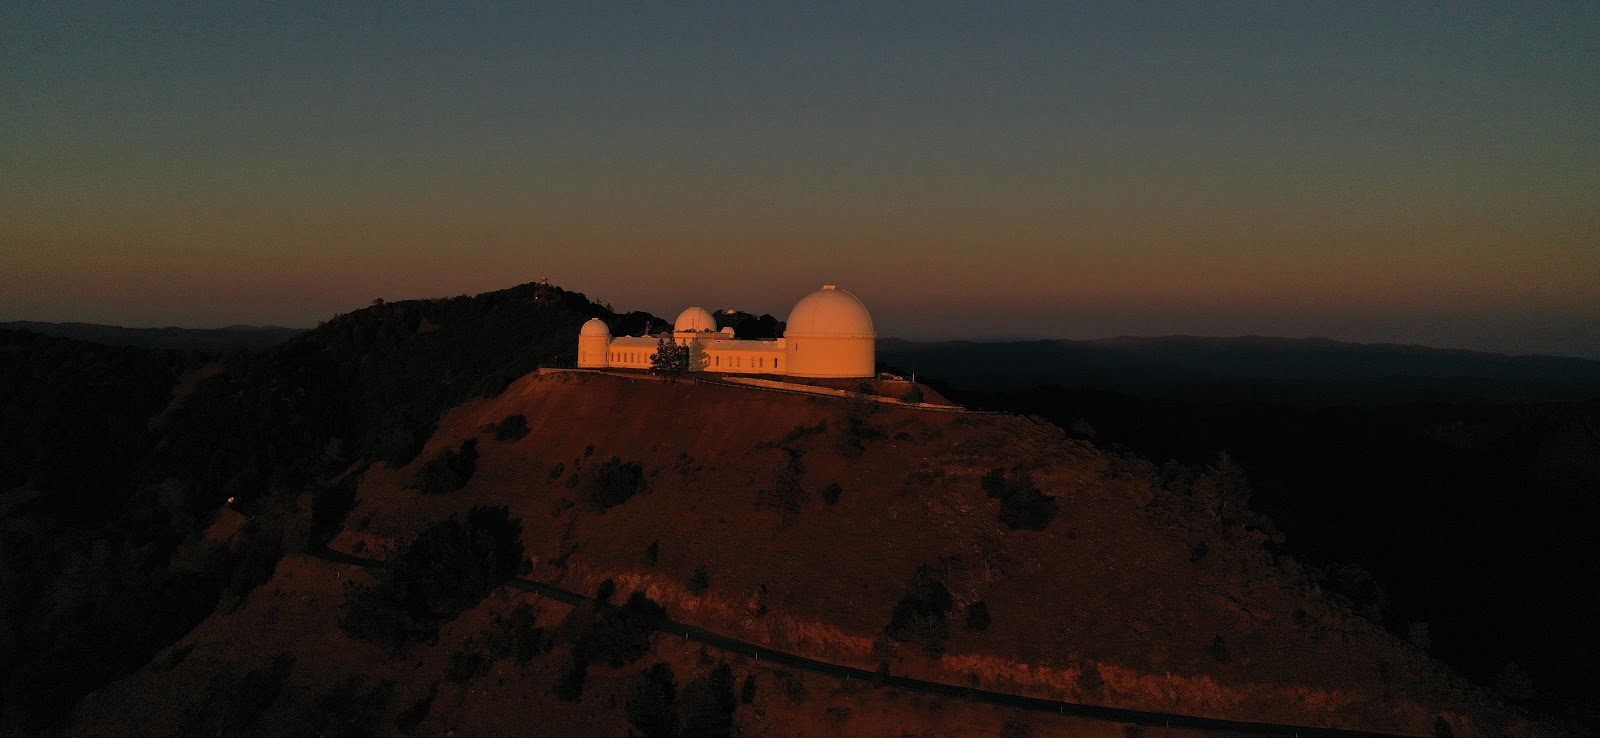 Cycling Mt. Hamilton - Lick Observatory aerial drone photo at sunset